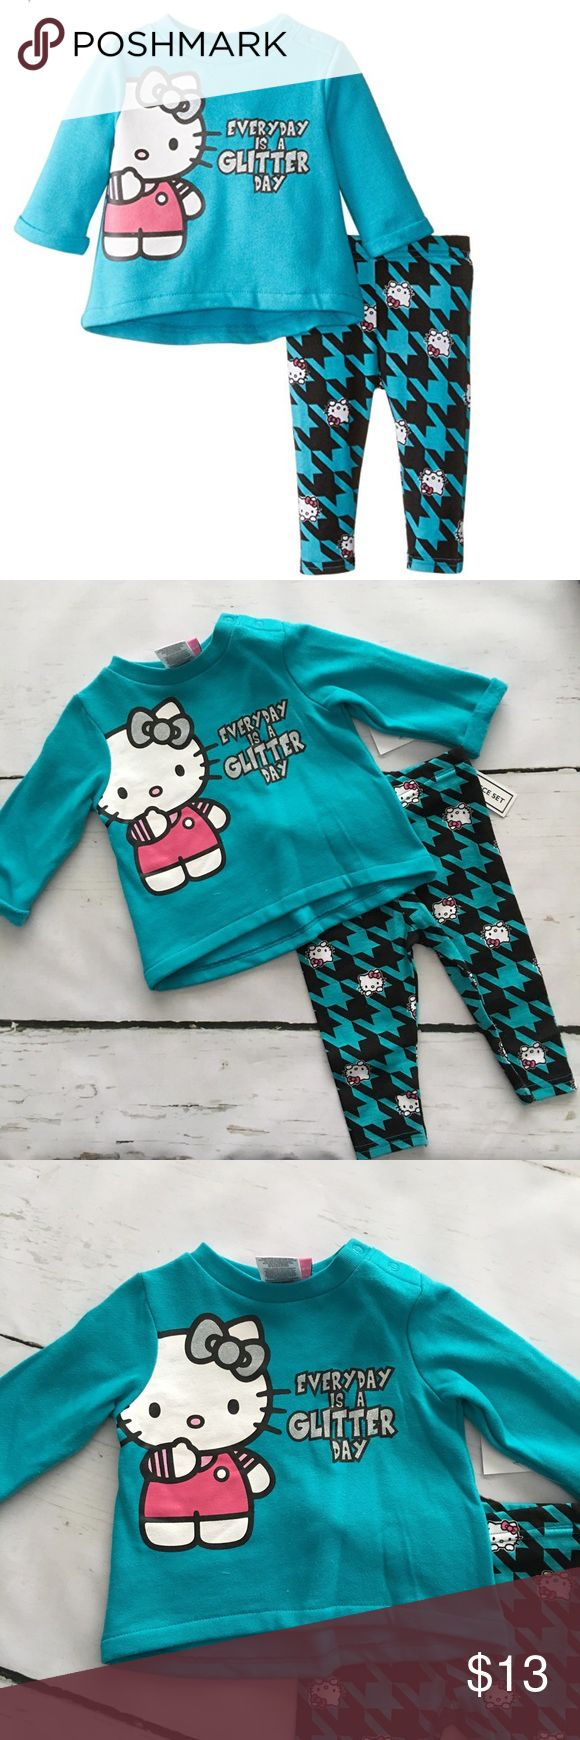 🆕Hello Kitty Set🆕 Absolutely correct! Every day is a glitter and sparkle day!! This outfit is a Hi-low style sweatshirt with rolled cuff's and a pair of matching leggings. Hello Kitty Matching Sets